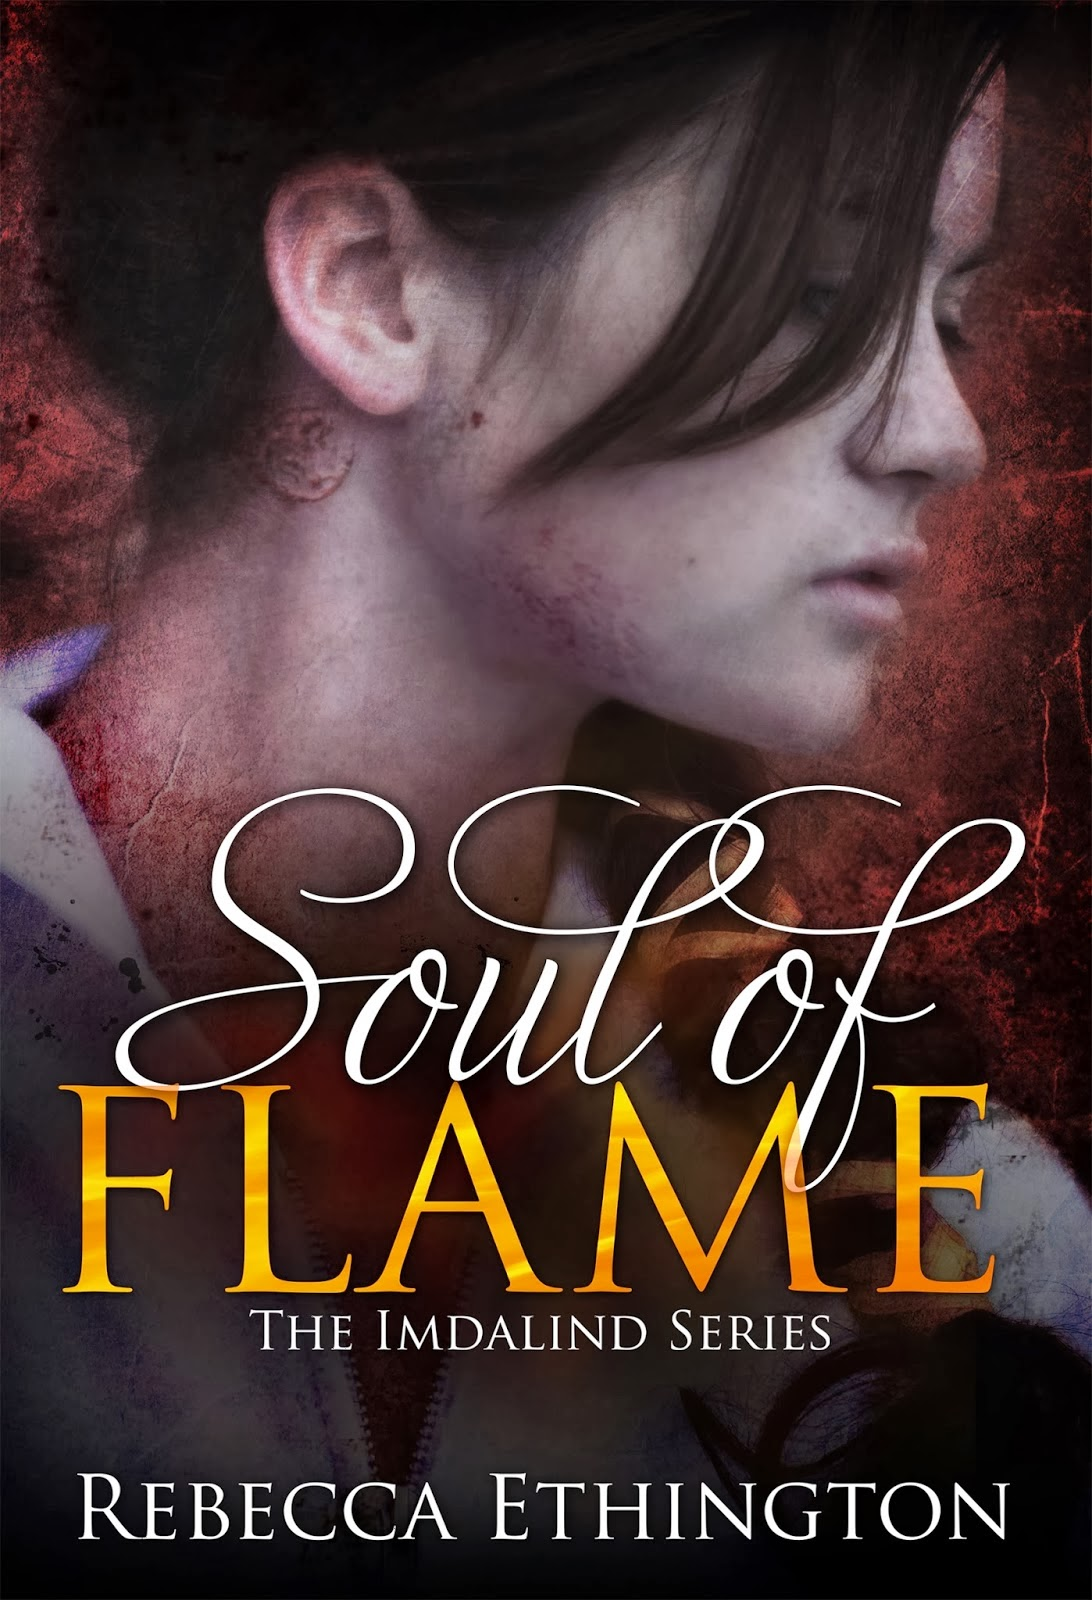 https://www.goodreads.com/book/show/18186721-soul-of-flame